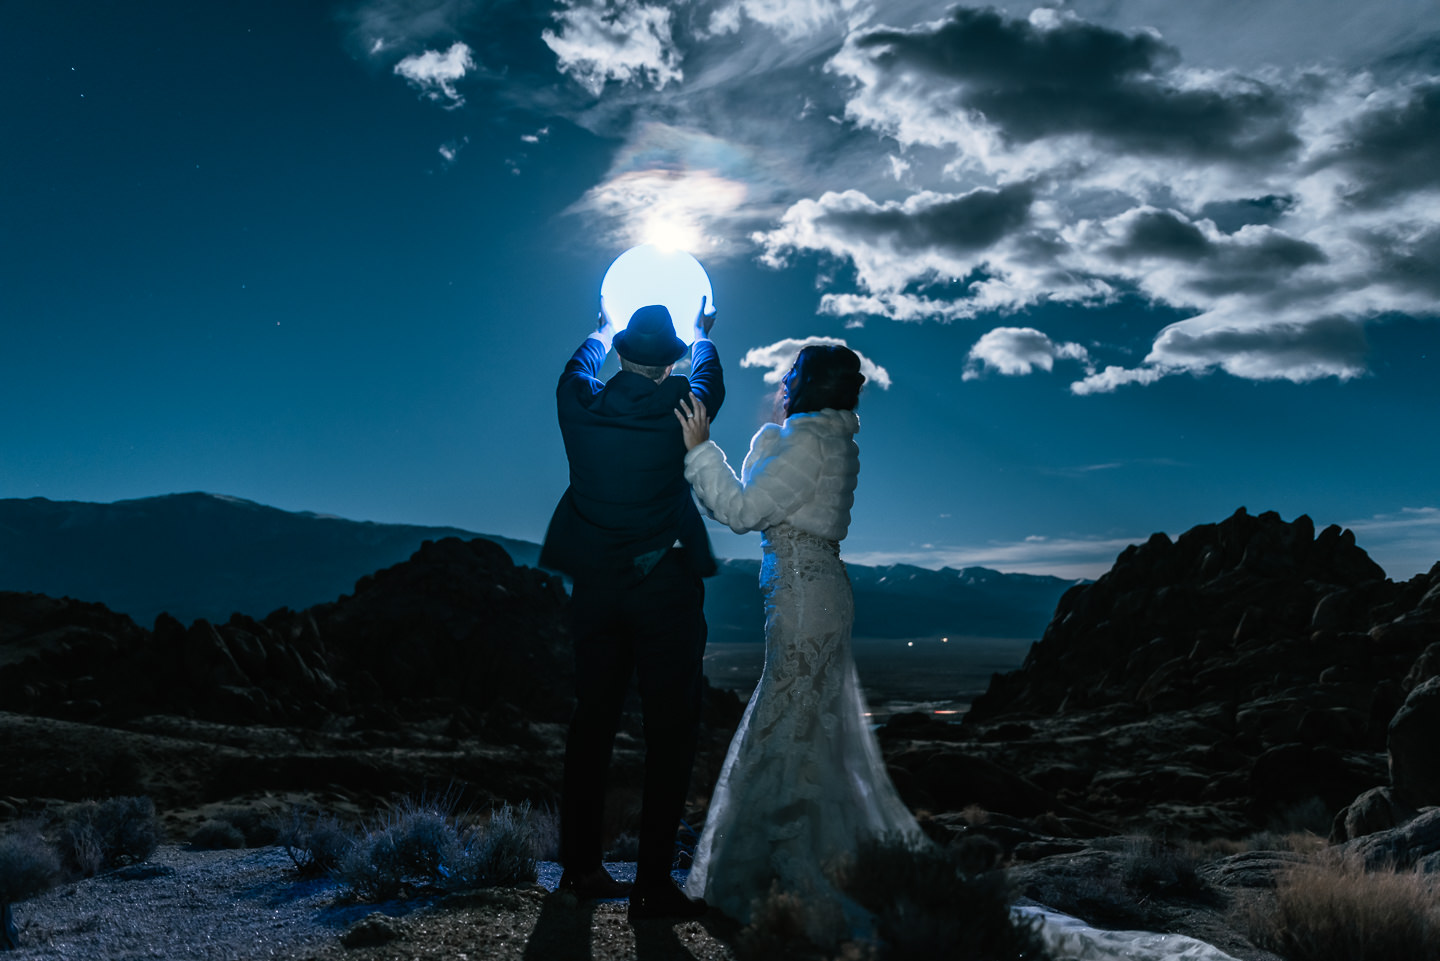 alabama-hills-california-elopement (81 of 84).jpg